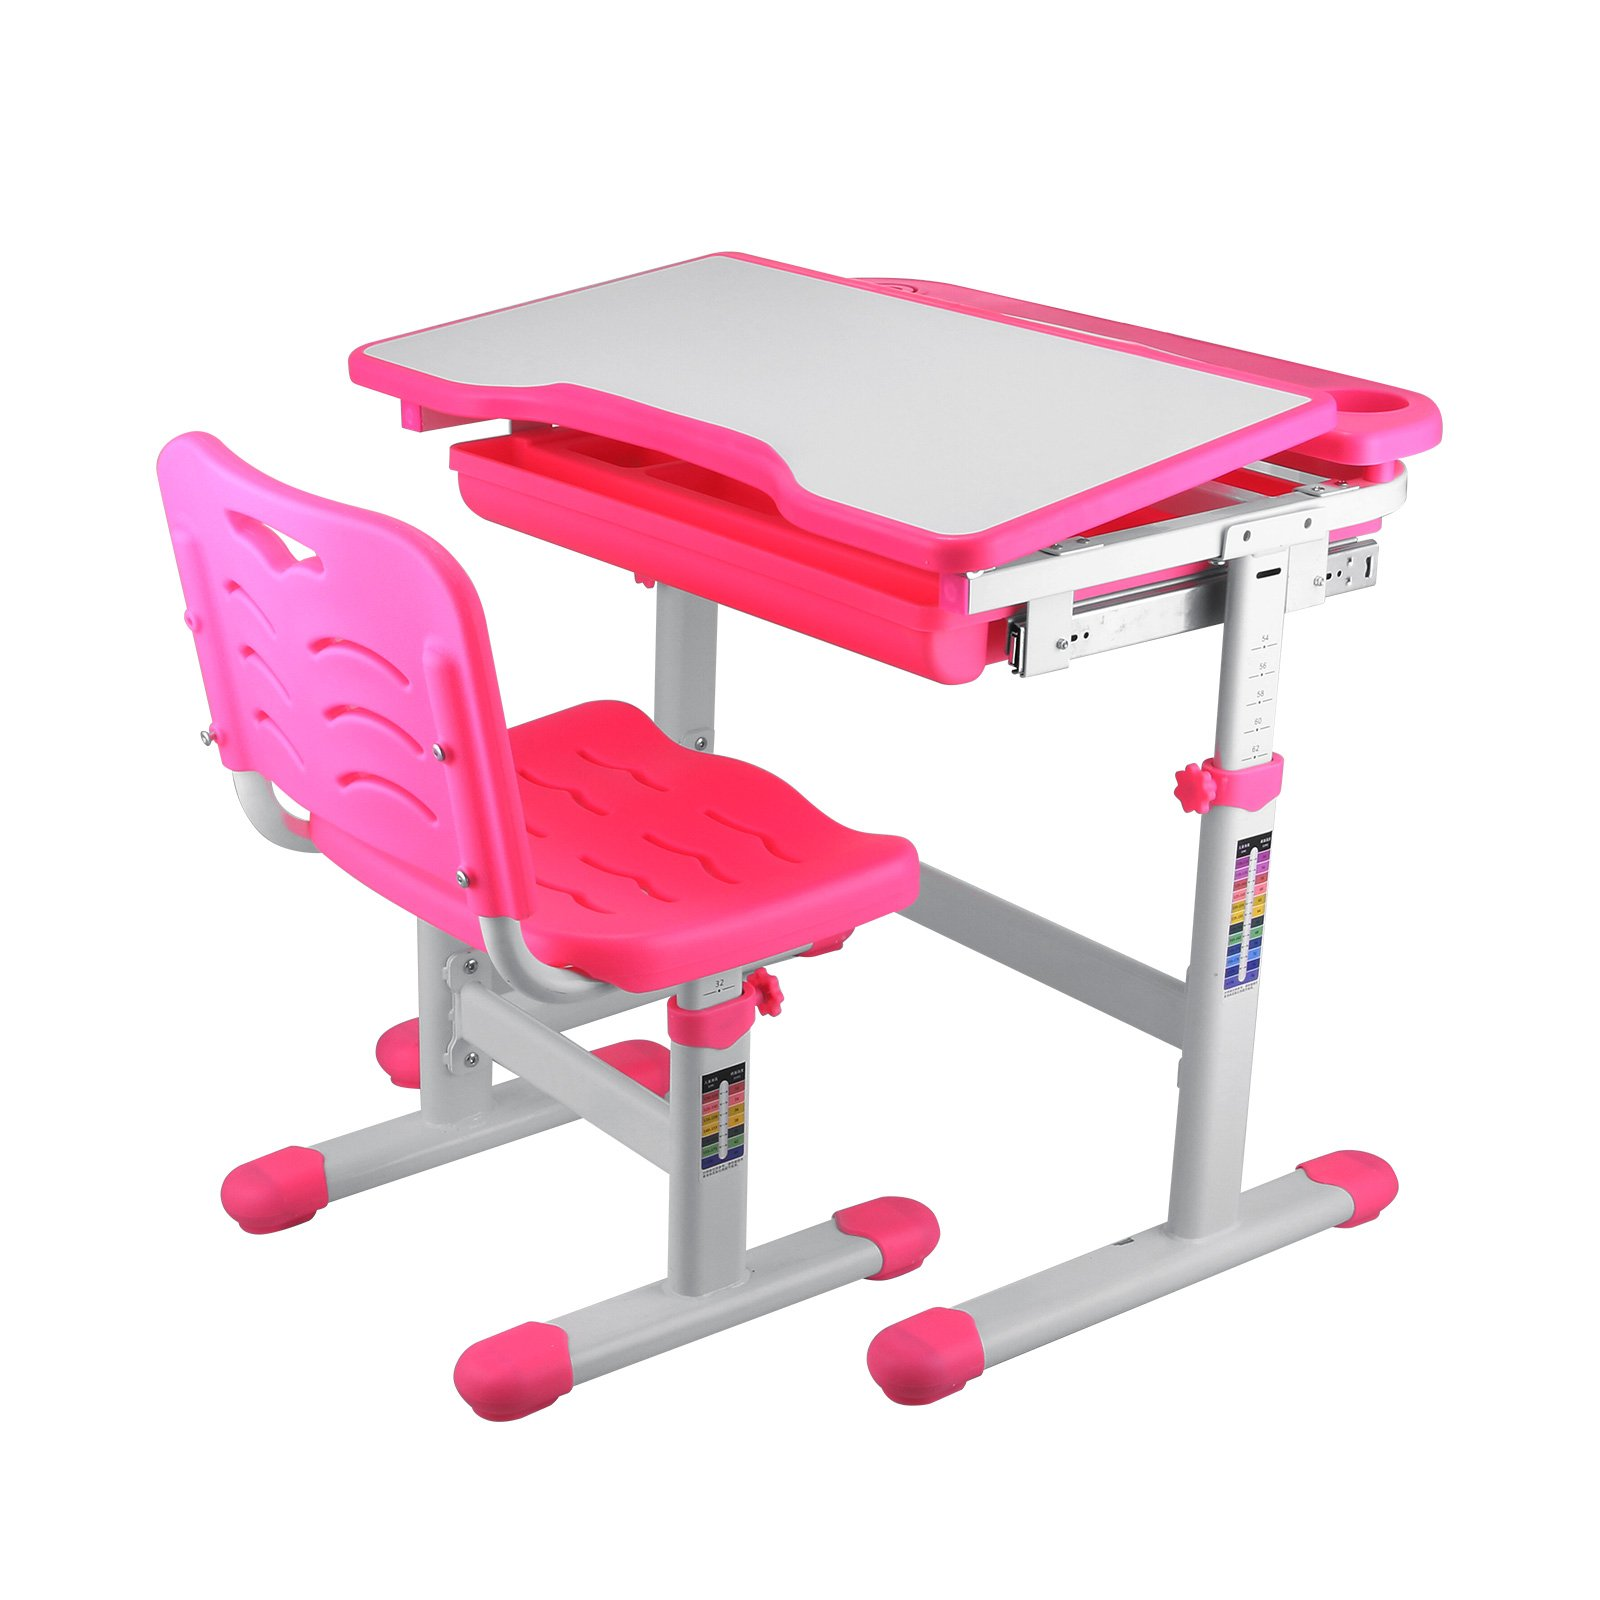 SucceBuy Height Adjustable Desk And Chair For Children Adjustable Desk And Chair Pink Kids Desk Interactive Work Station by SucceBuy